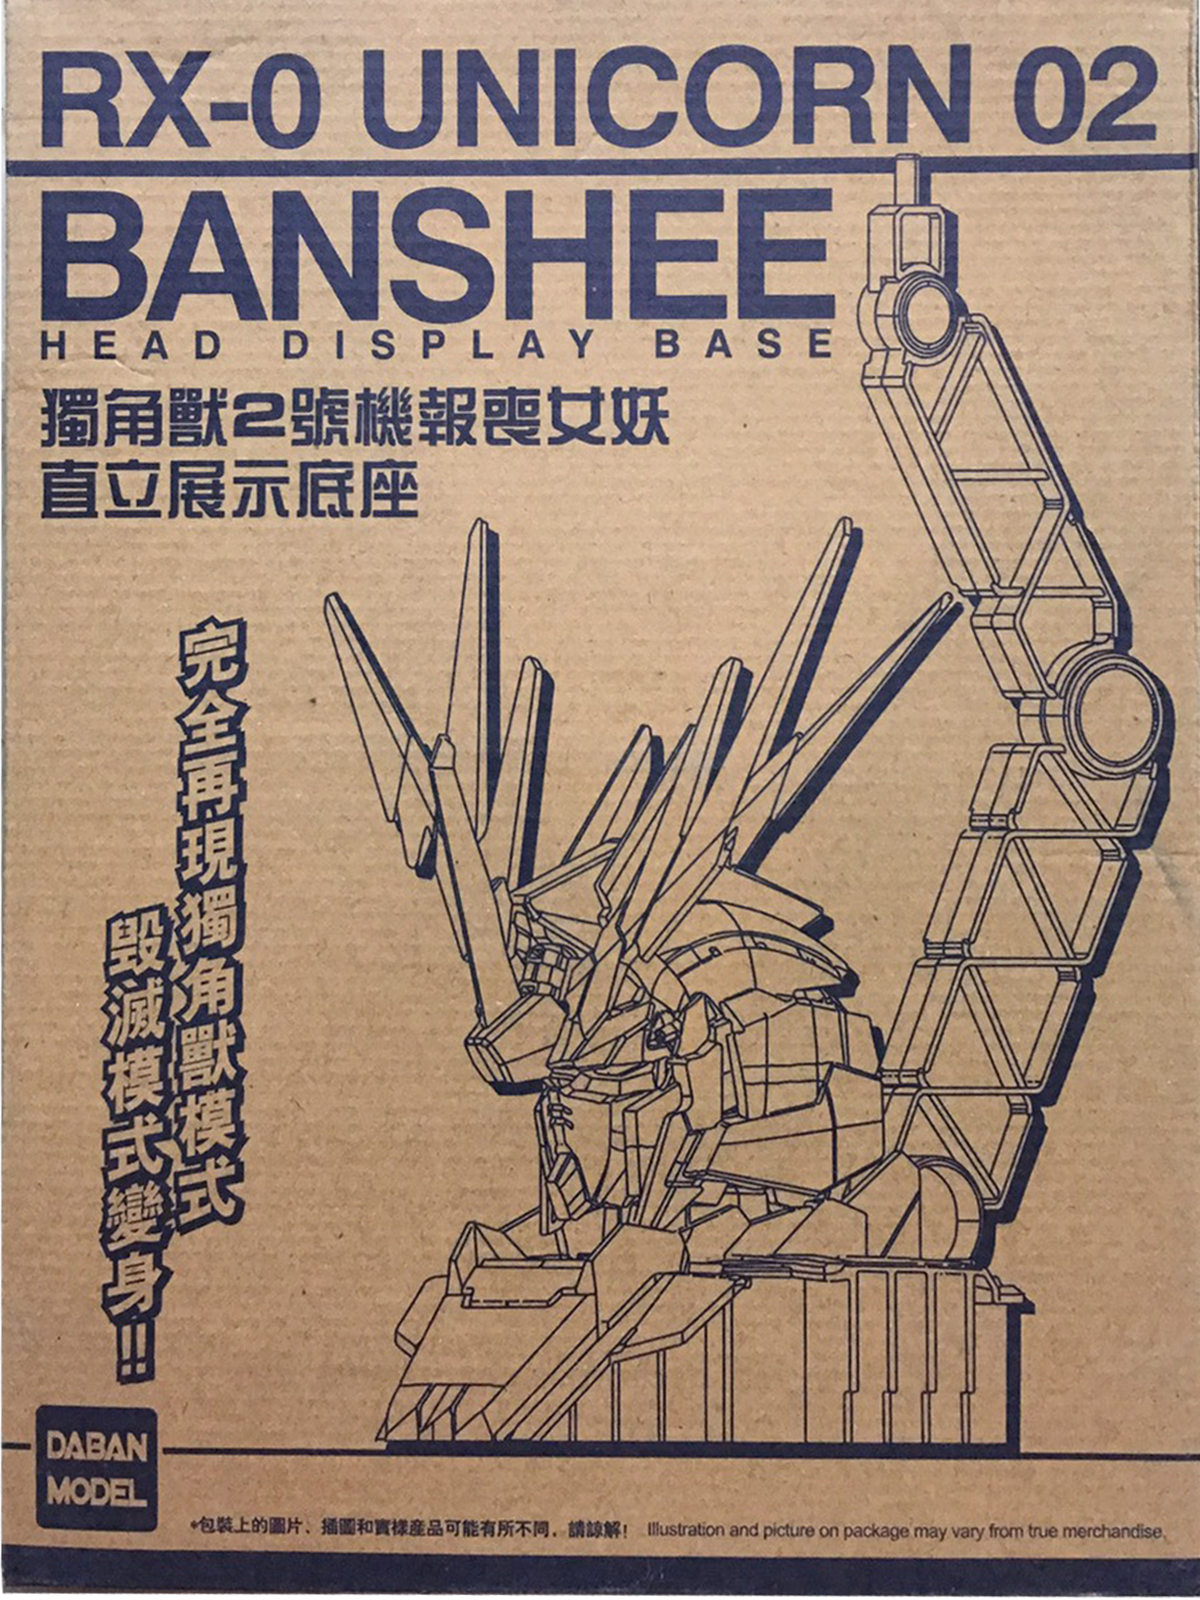 RX-0 Unicorn 02 Banshee Head Display Base